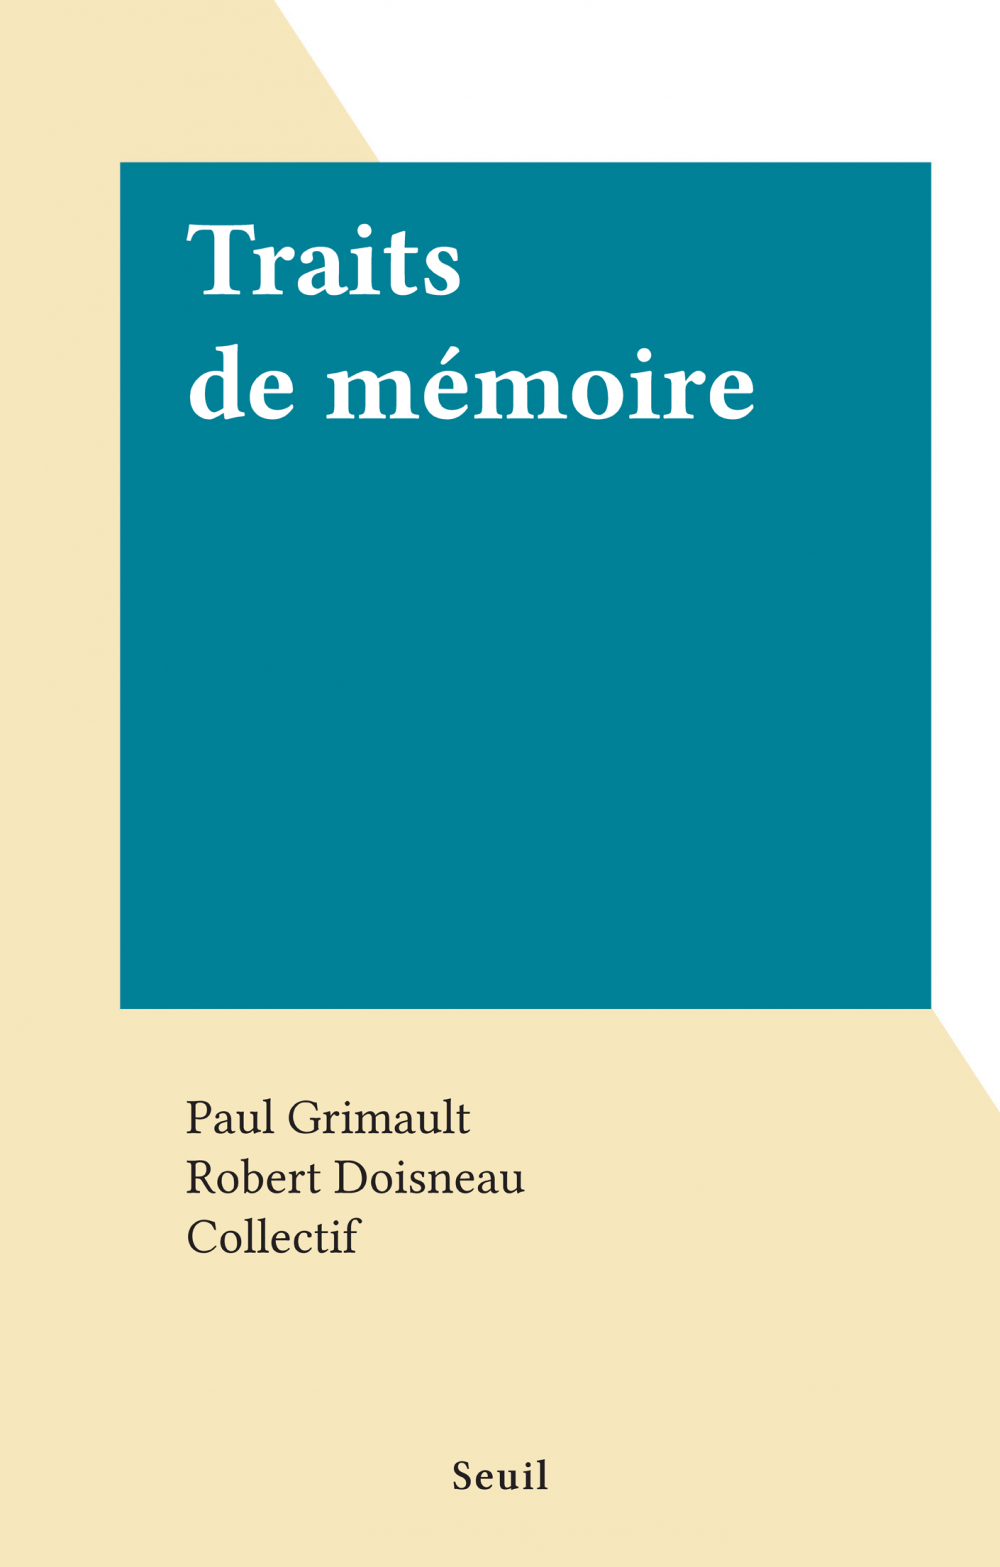 Traits de mémoire